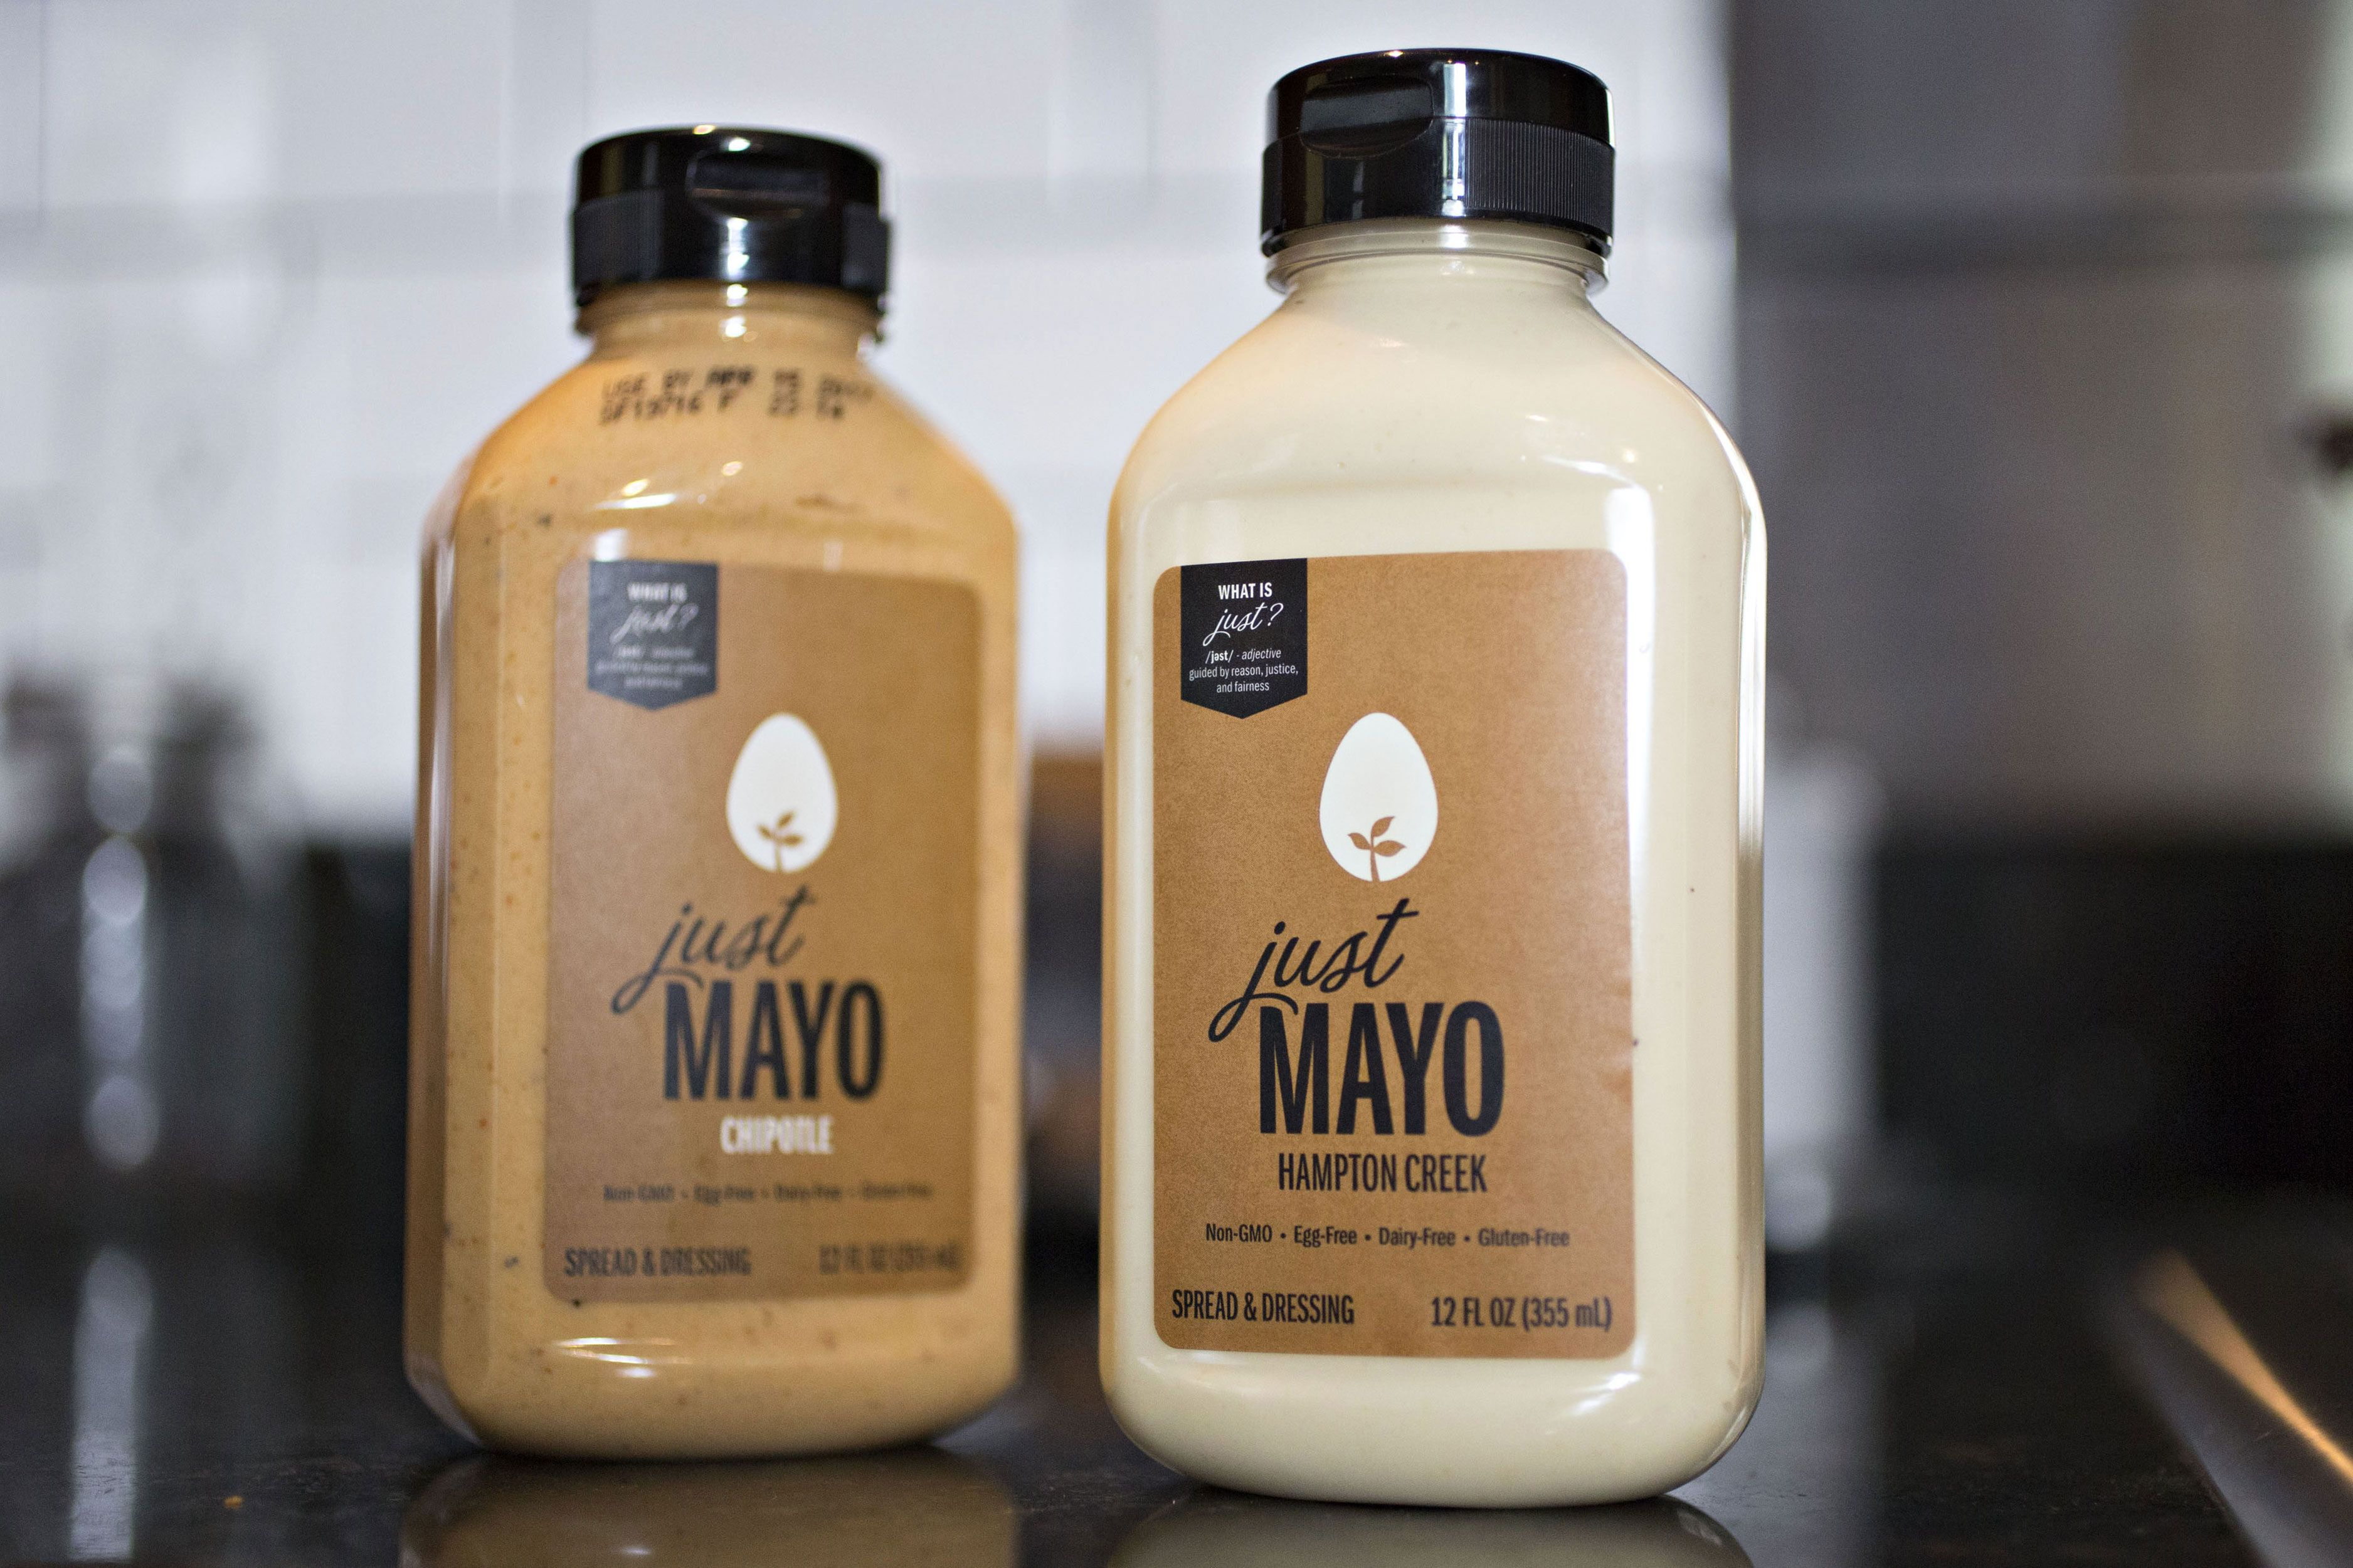 Target Pulls All Hampton Creek Products Over Health Concerns